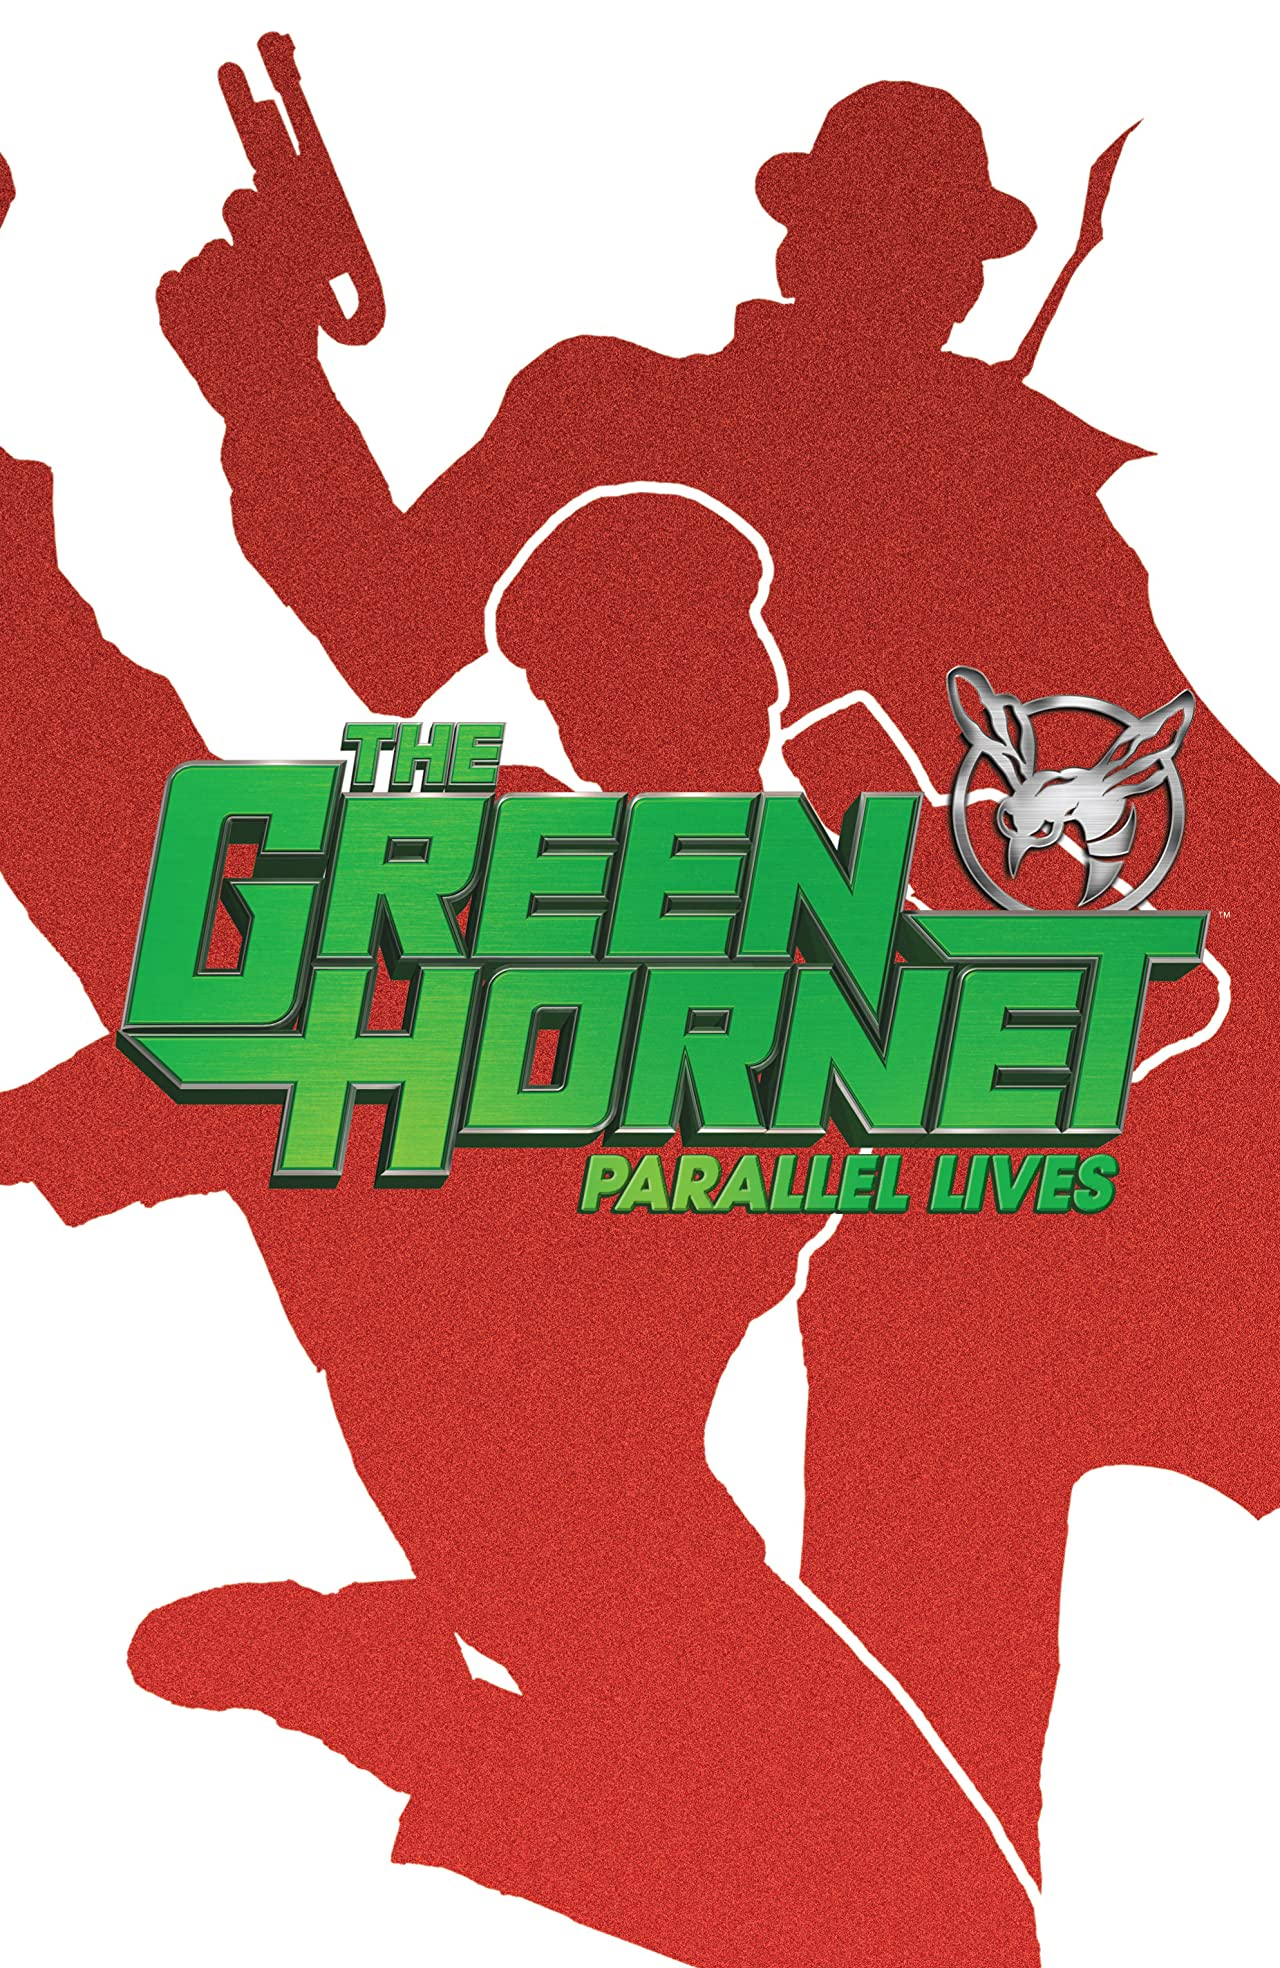 The Green Hornet Strikes! Vol. 1